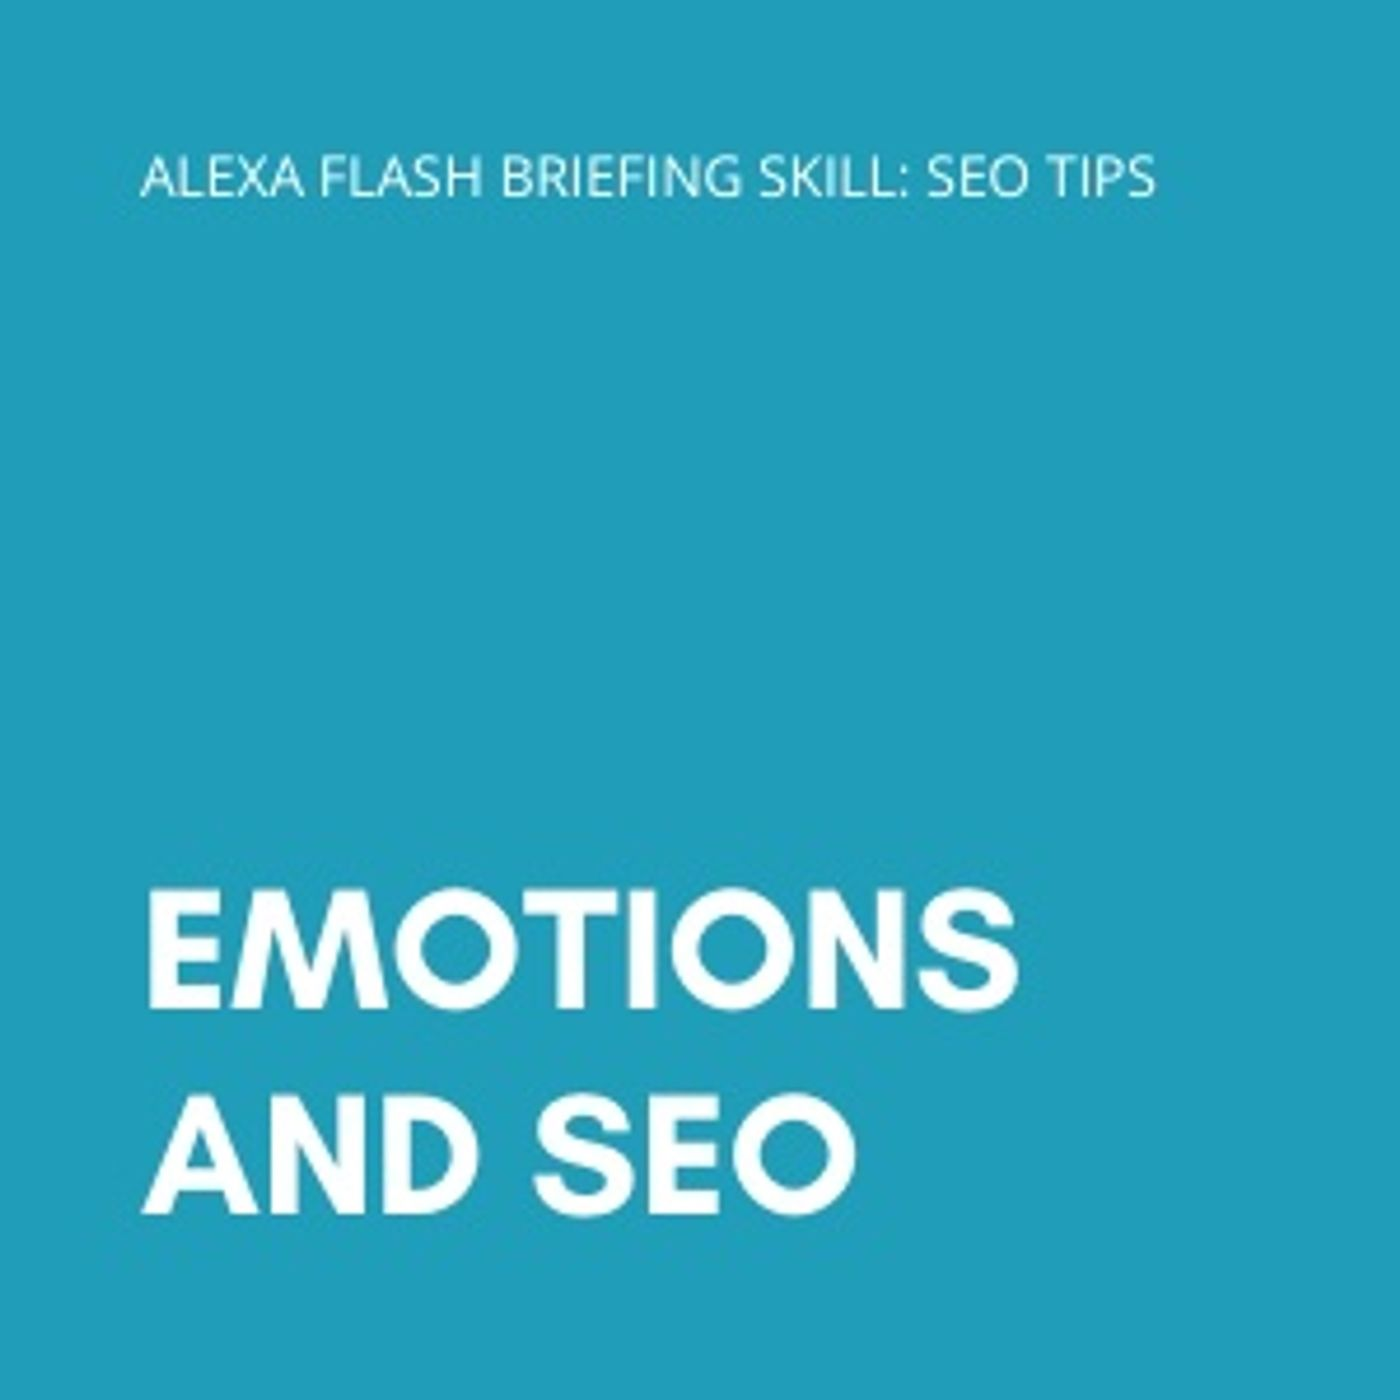 Emotions and SEO